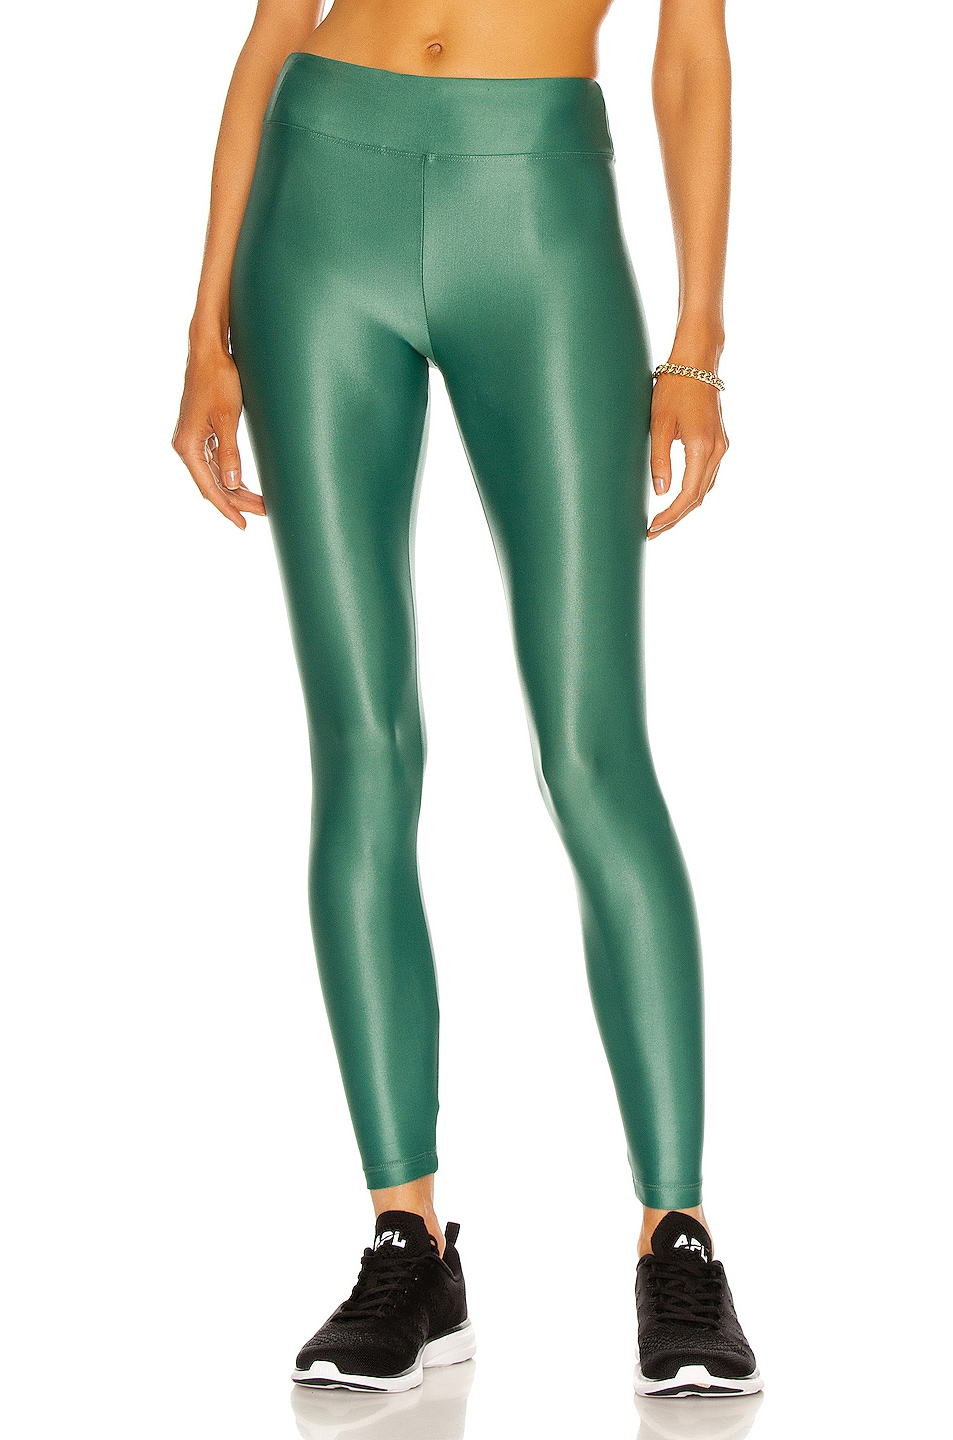 Image 1 of KORAL Lustrous High Rise Infinity Legging in Duffle Green